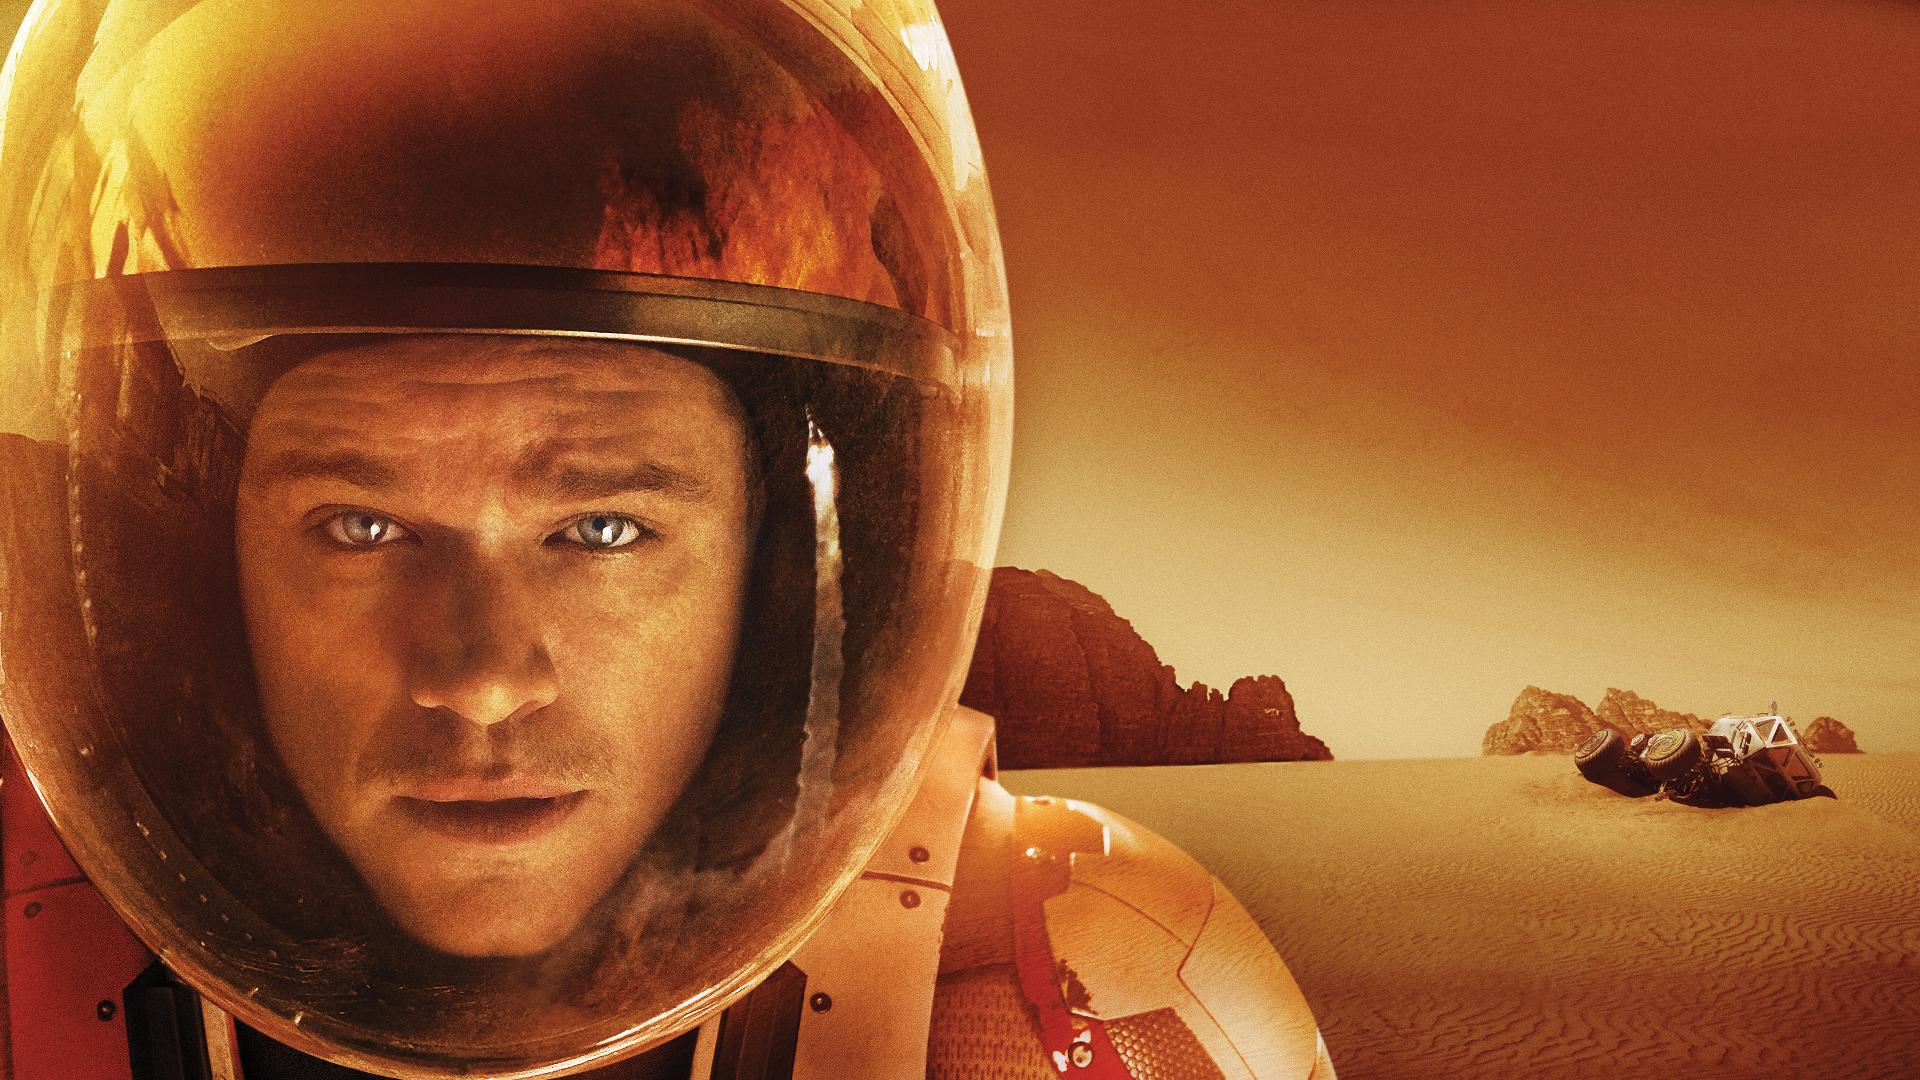 ridley_scott_the_martian-1920x1080